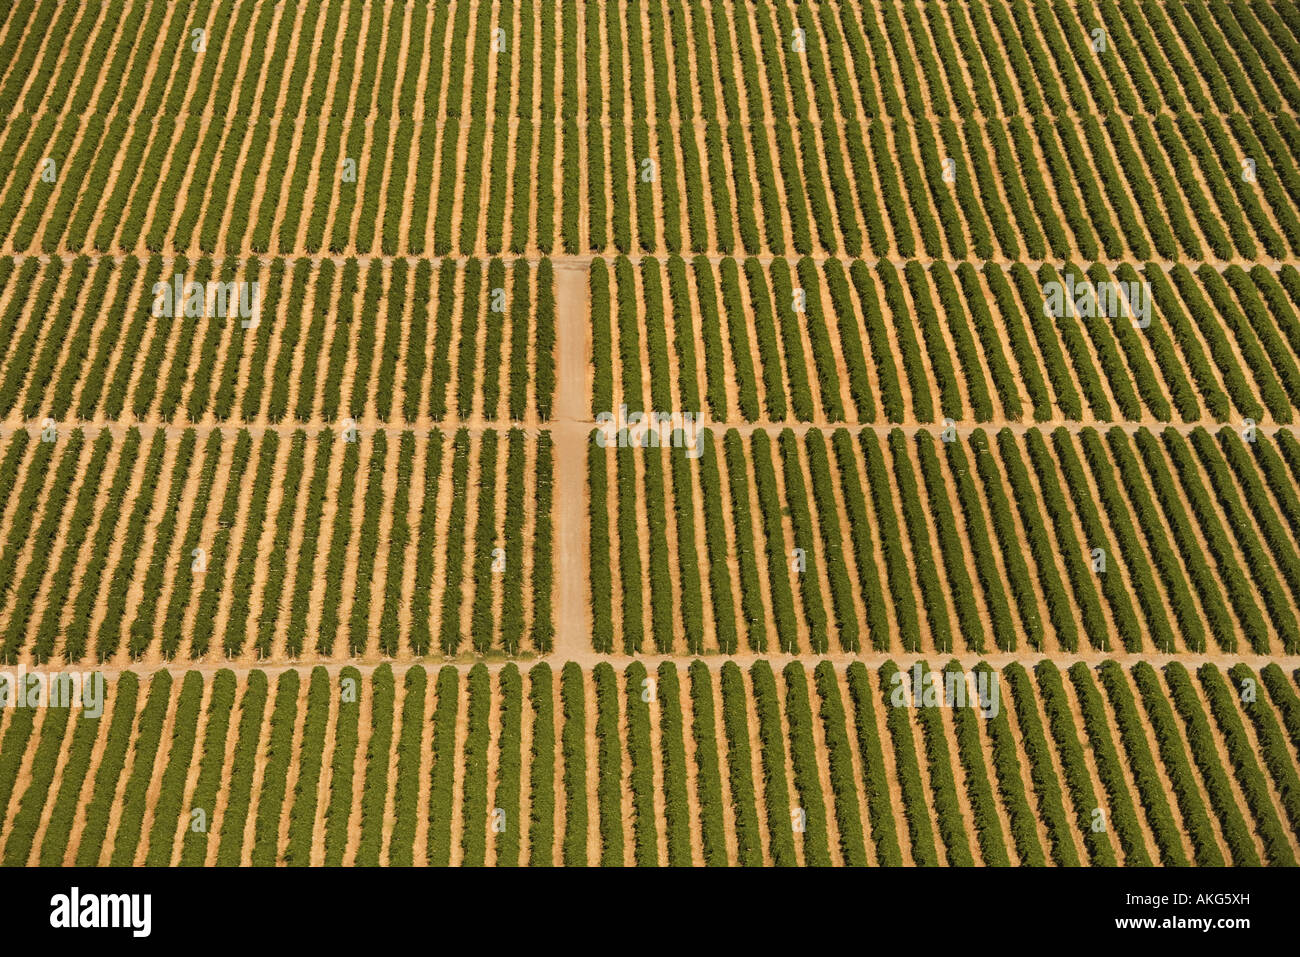 aerial view of farmland with rows of crops stock photo